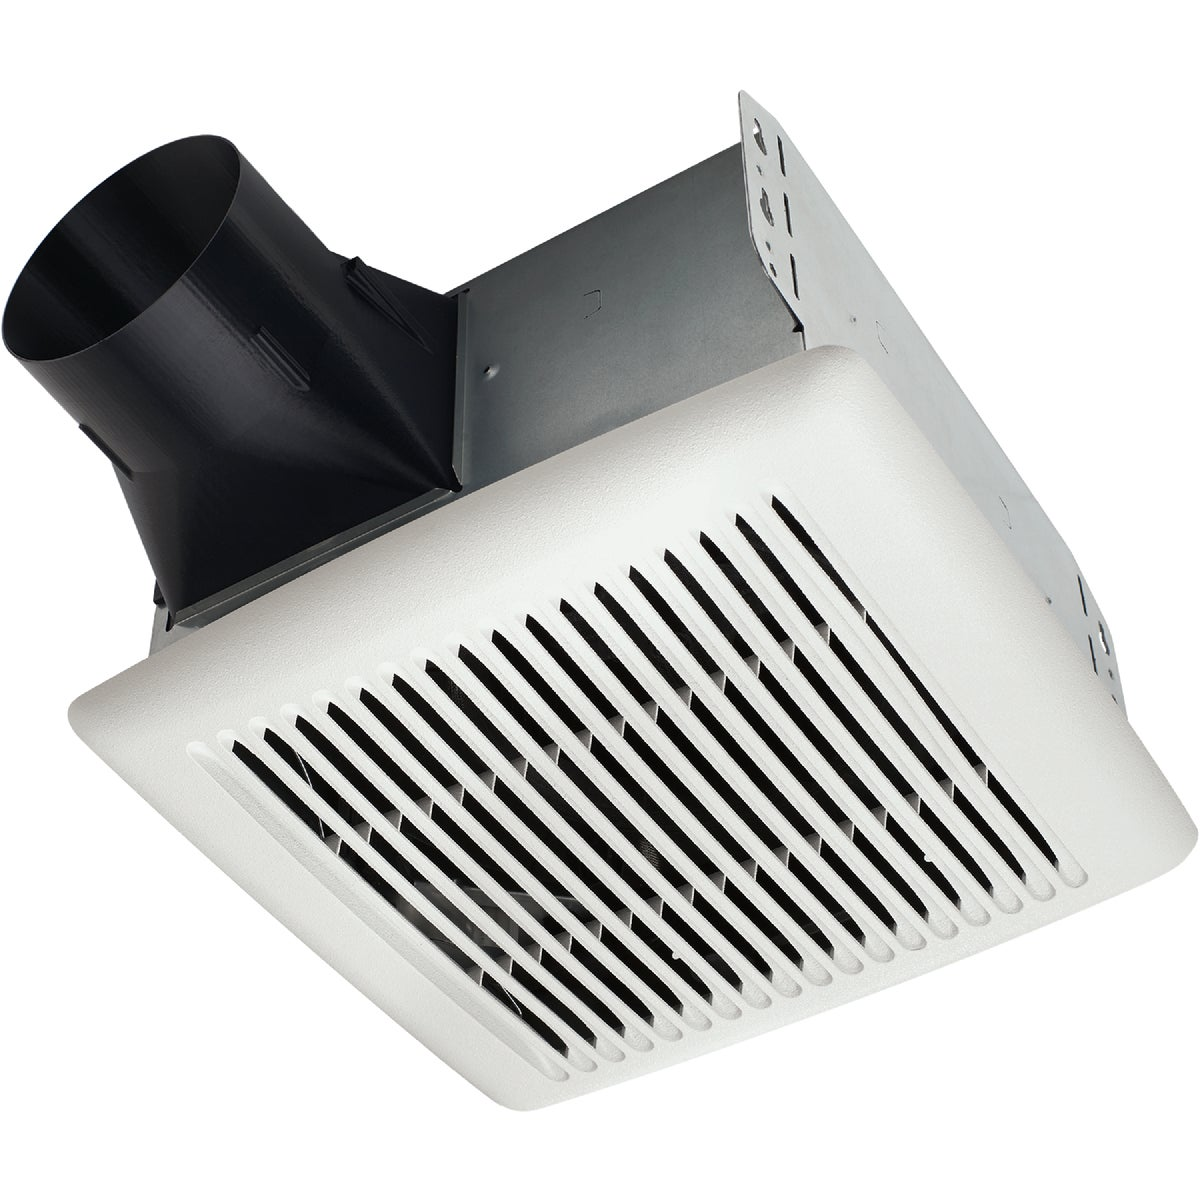 BATH EXHAUST FAN - 684 by Broan Nutone